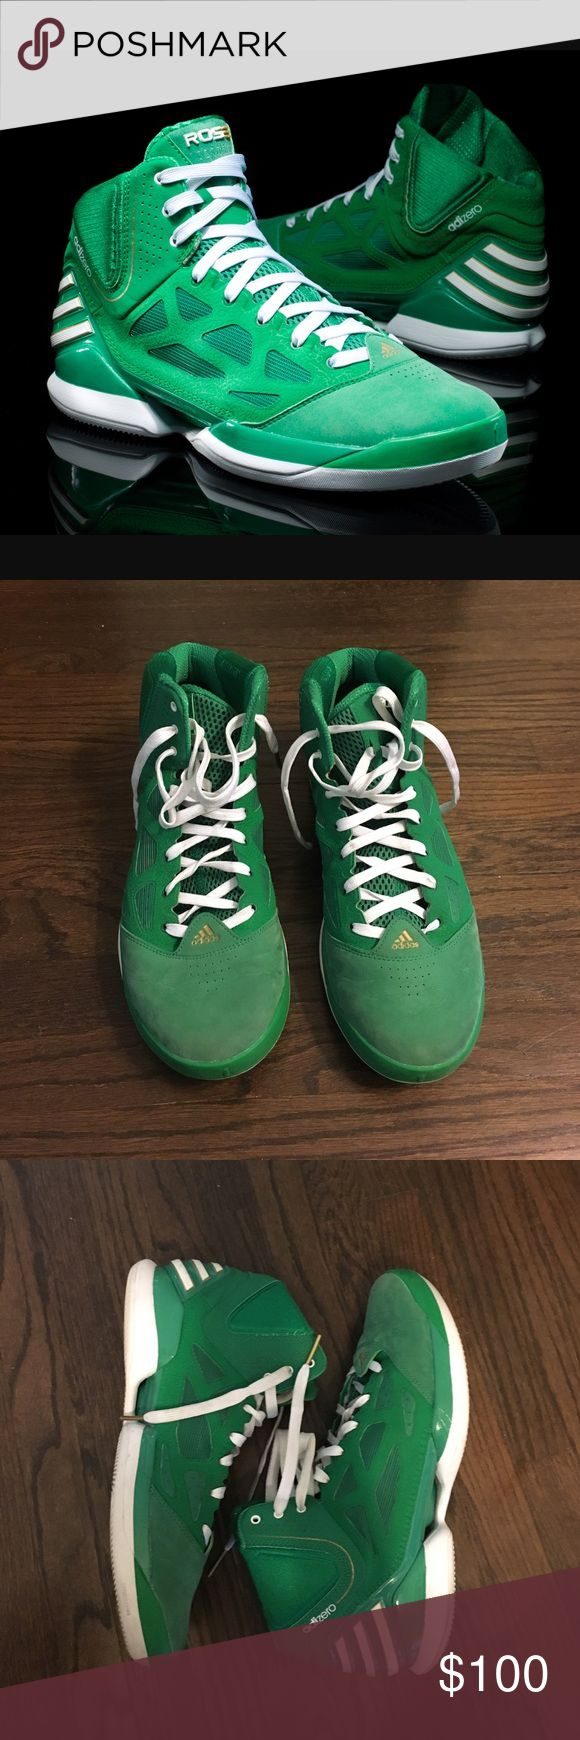 "⬇️Men's adiZero Rose 2.5 ""St Patrick's Day""•Sz 12 Men's Adidas adiZero Rose 2.5 ""St Patrick's Day"" Basketball shoes, good condition. Limited, sold out in stores, 100% Authentic! Adidas Shoes Athletic Shoes"